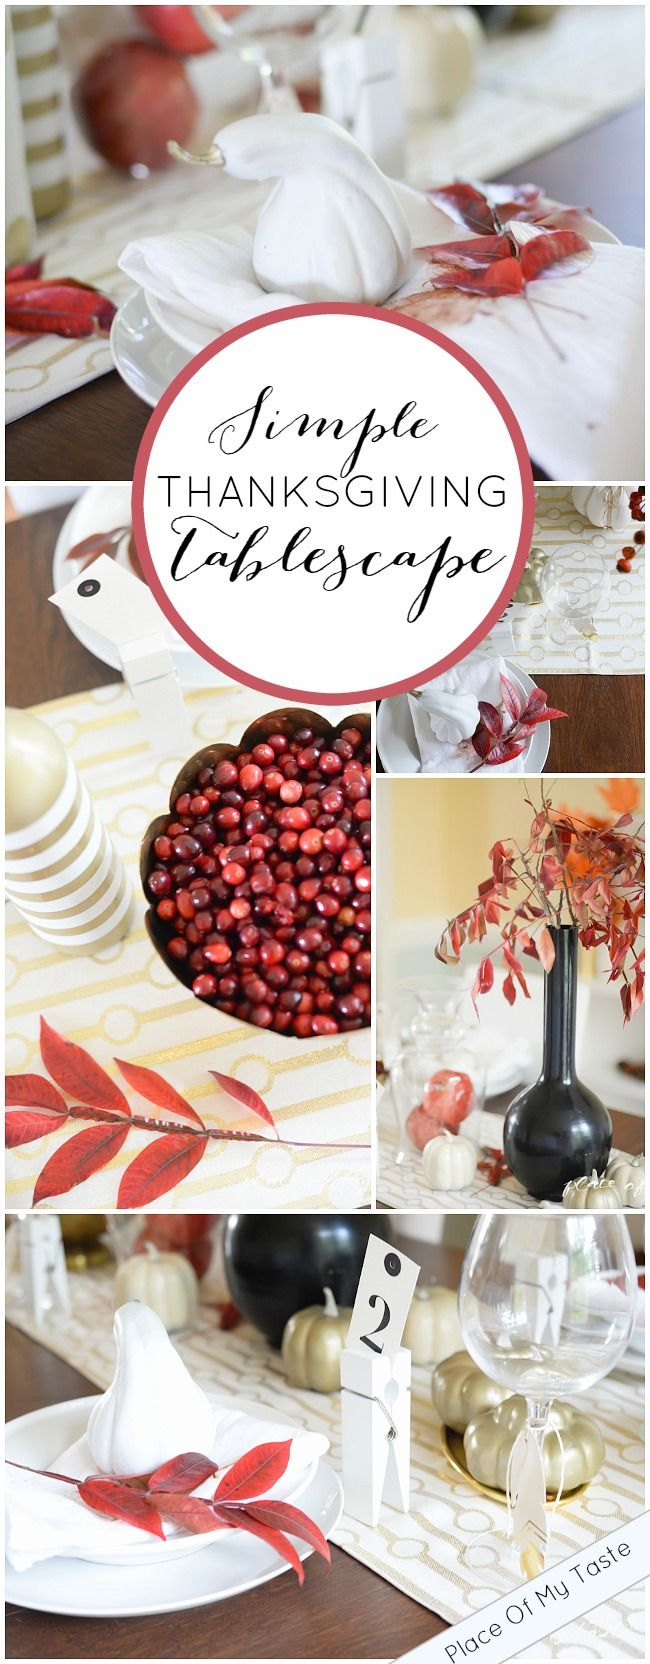 95 best FALL DECOR AND RECIPES images on Pinterest | Pumpkin ...